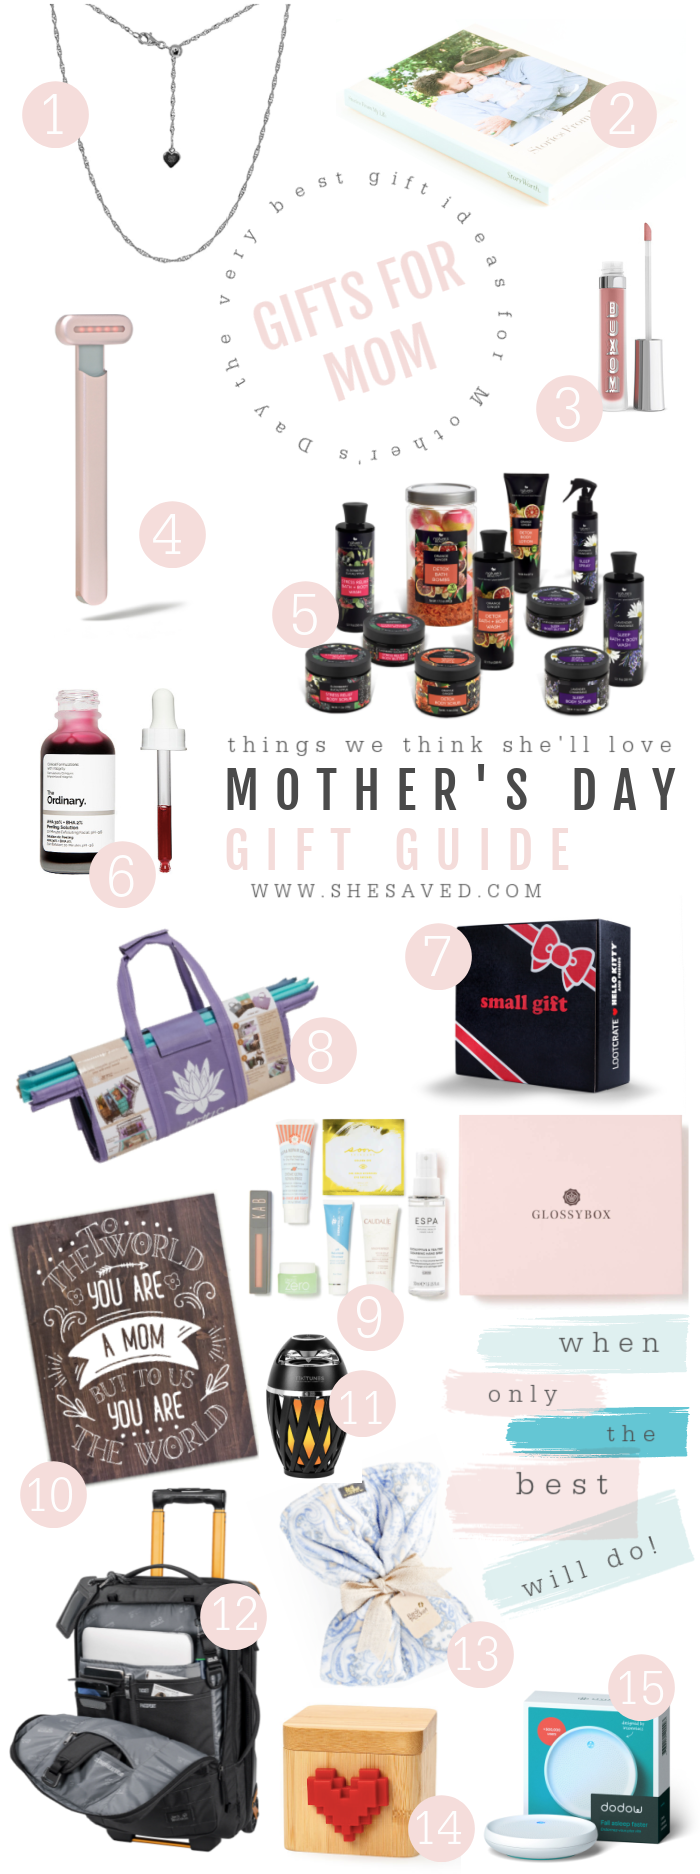 Mother's Day Gift Ideas Guide 2021 full of wonderful and unique and affordable gift ideas for Mom